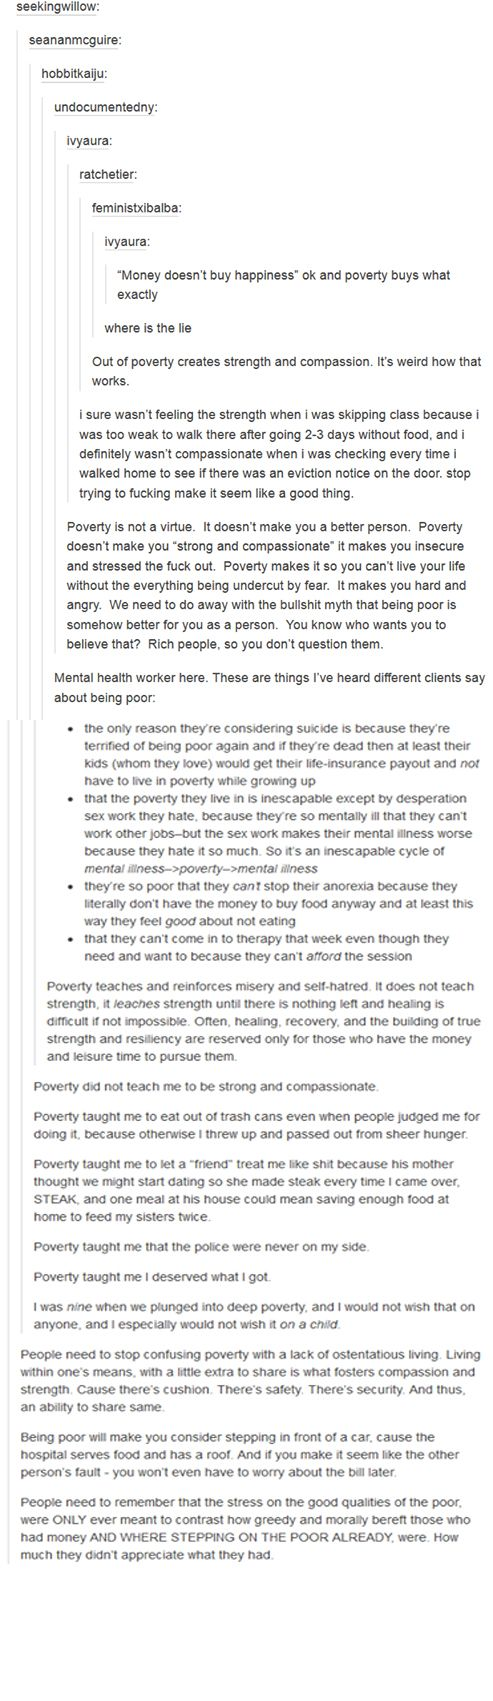 I agree that money doesn't buy happiness for everything but it does contribute to giving you stuff you want or need. For example to go kayaking or getting an ice cream. Money is a big part of society and does add to happiness in someways.